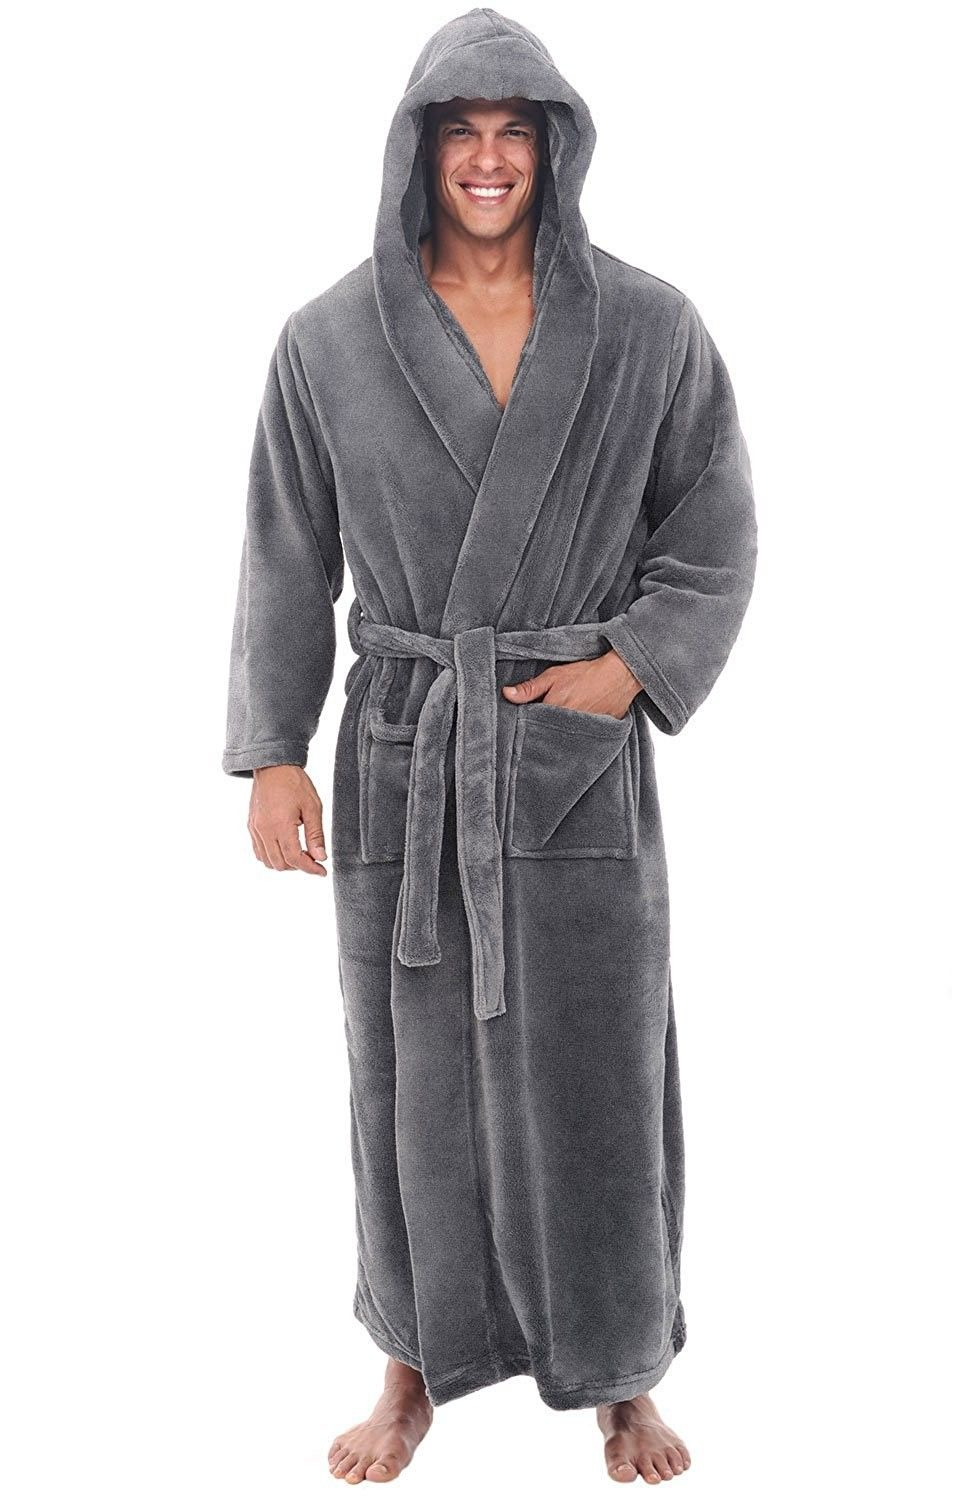 6d0792223d Mens fleece robe long hooded bathrobe steel grey dir nrn jpg 975x1500 Long  hooded robe men